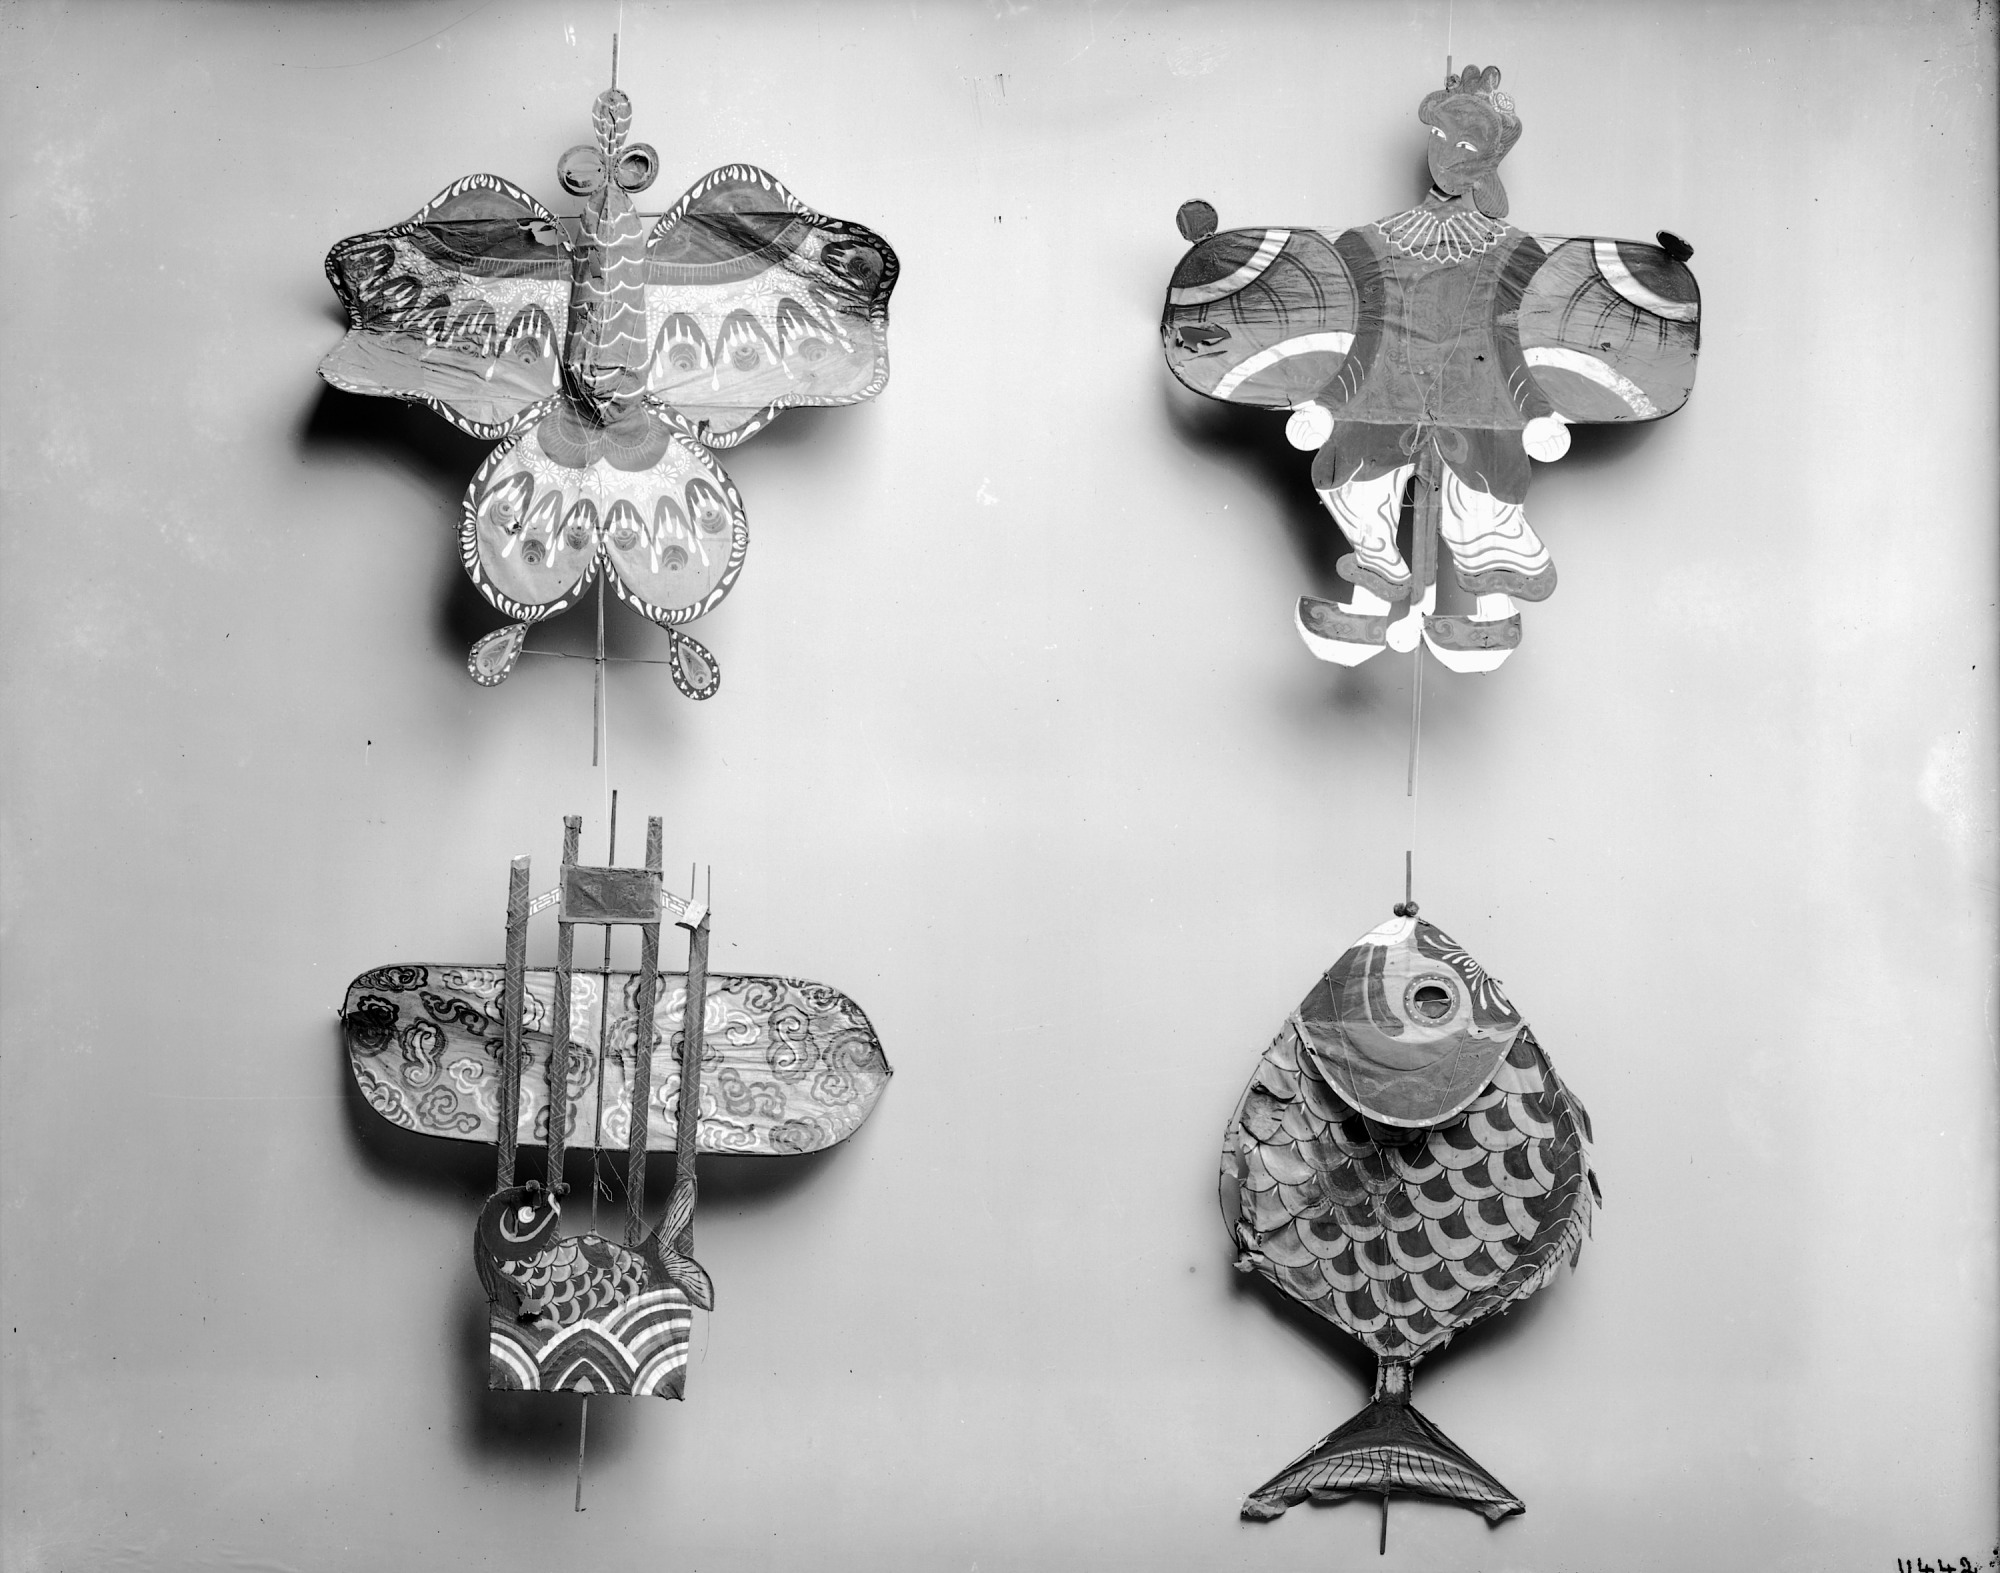 Chinese Kites Acquired for Display